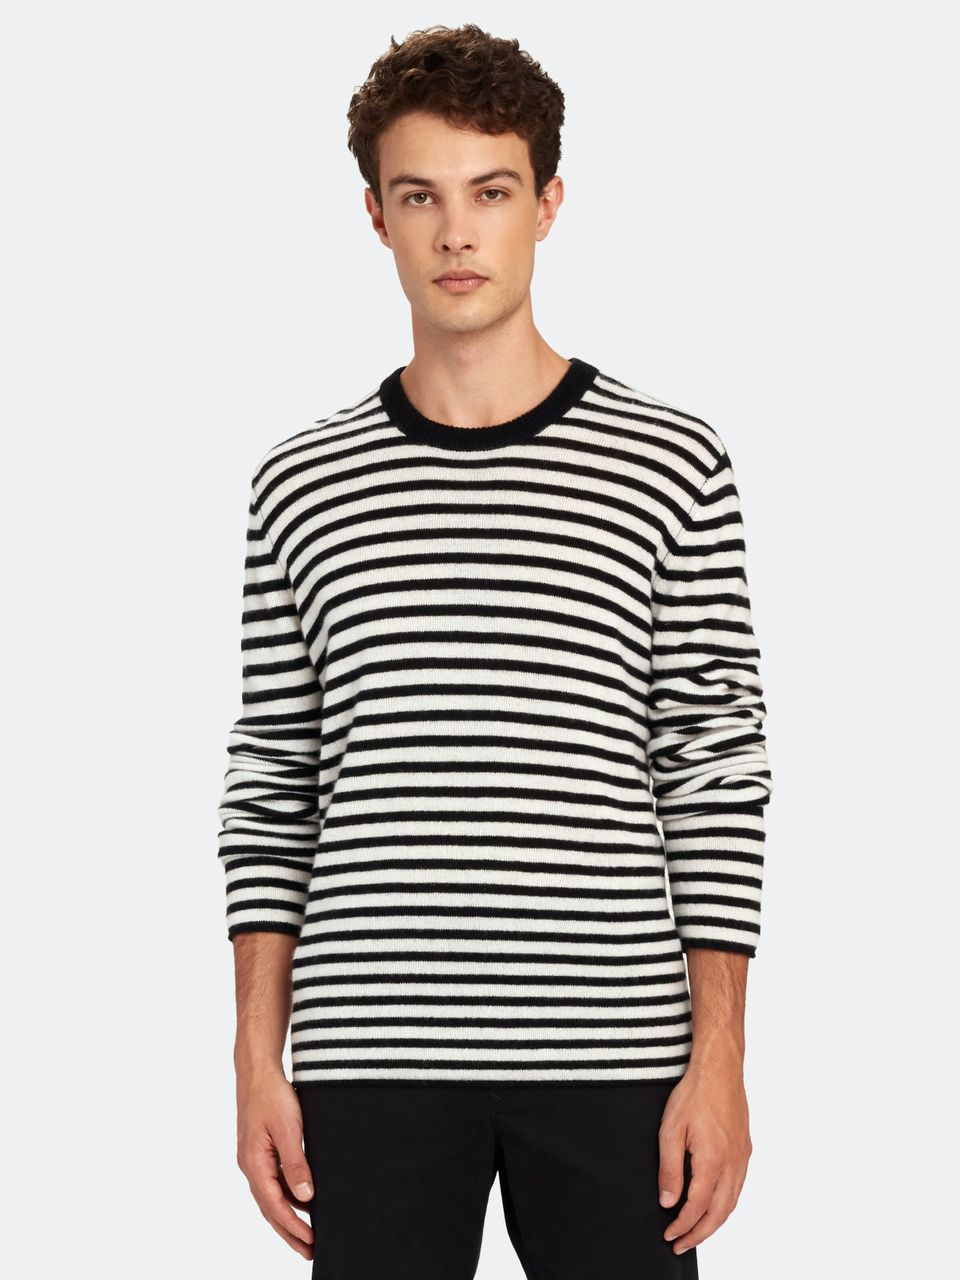 If You're A Nordstrom Fan, You Should Check Out This Verishop Sale 3